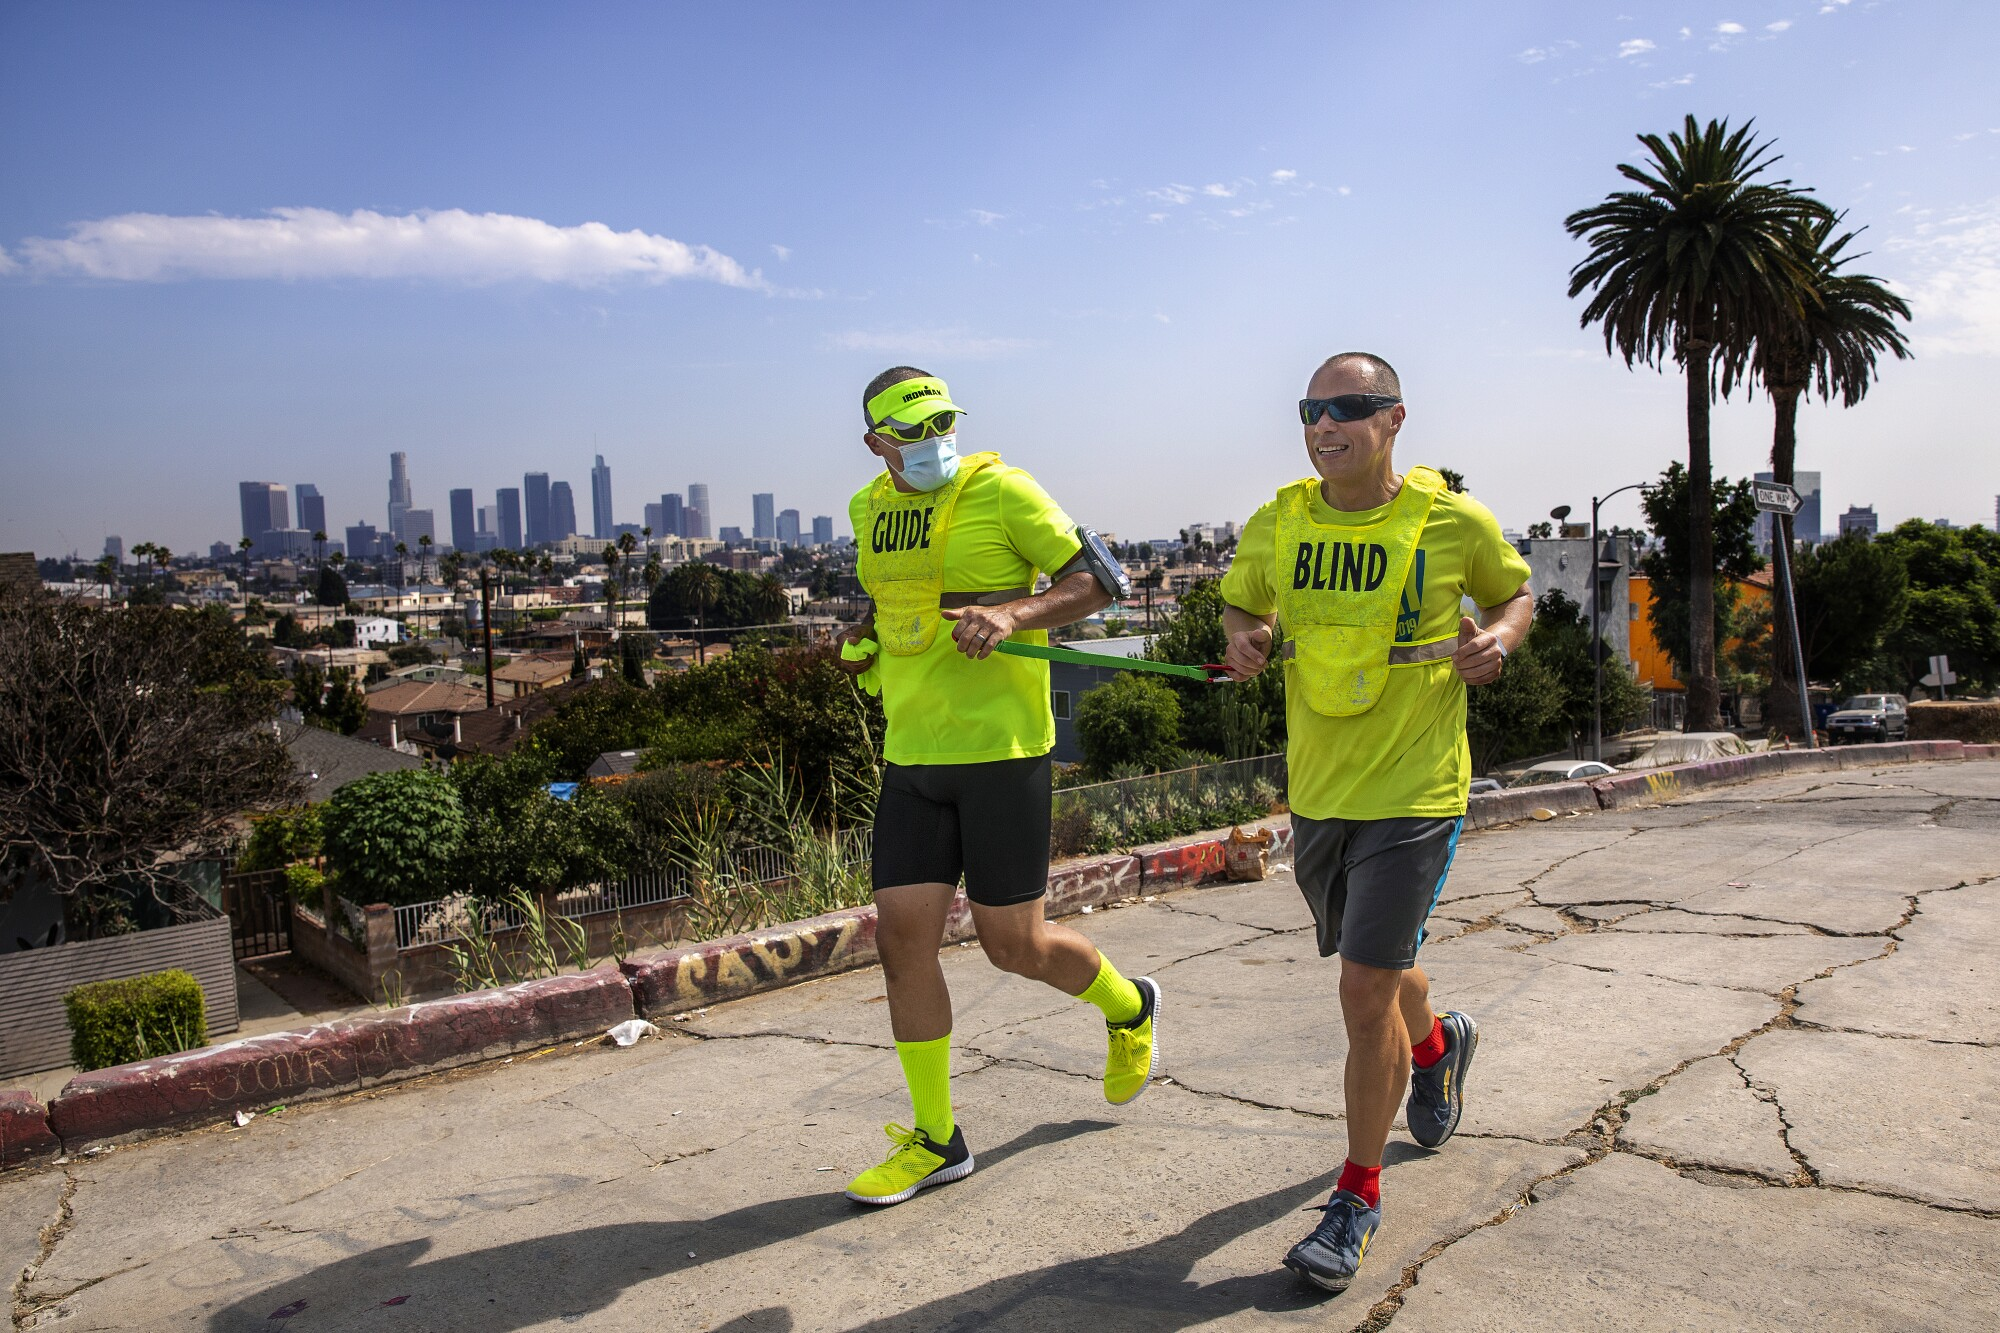 Tony Duenas, right, a marathon runner who is blind, and his guide, Ray Alcanter, jog together on Hoover Street in L.A.